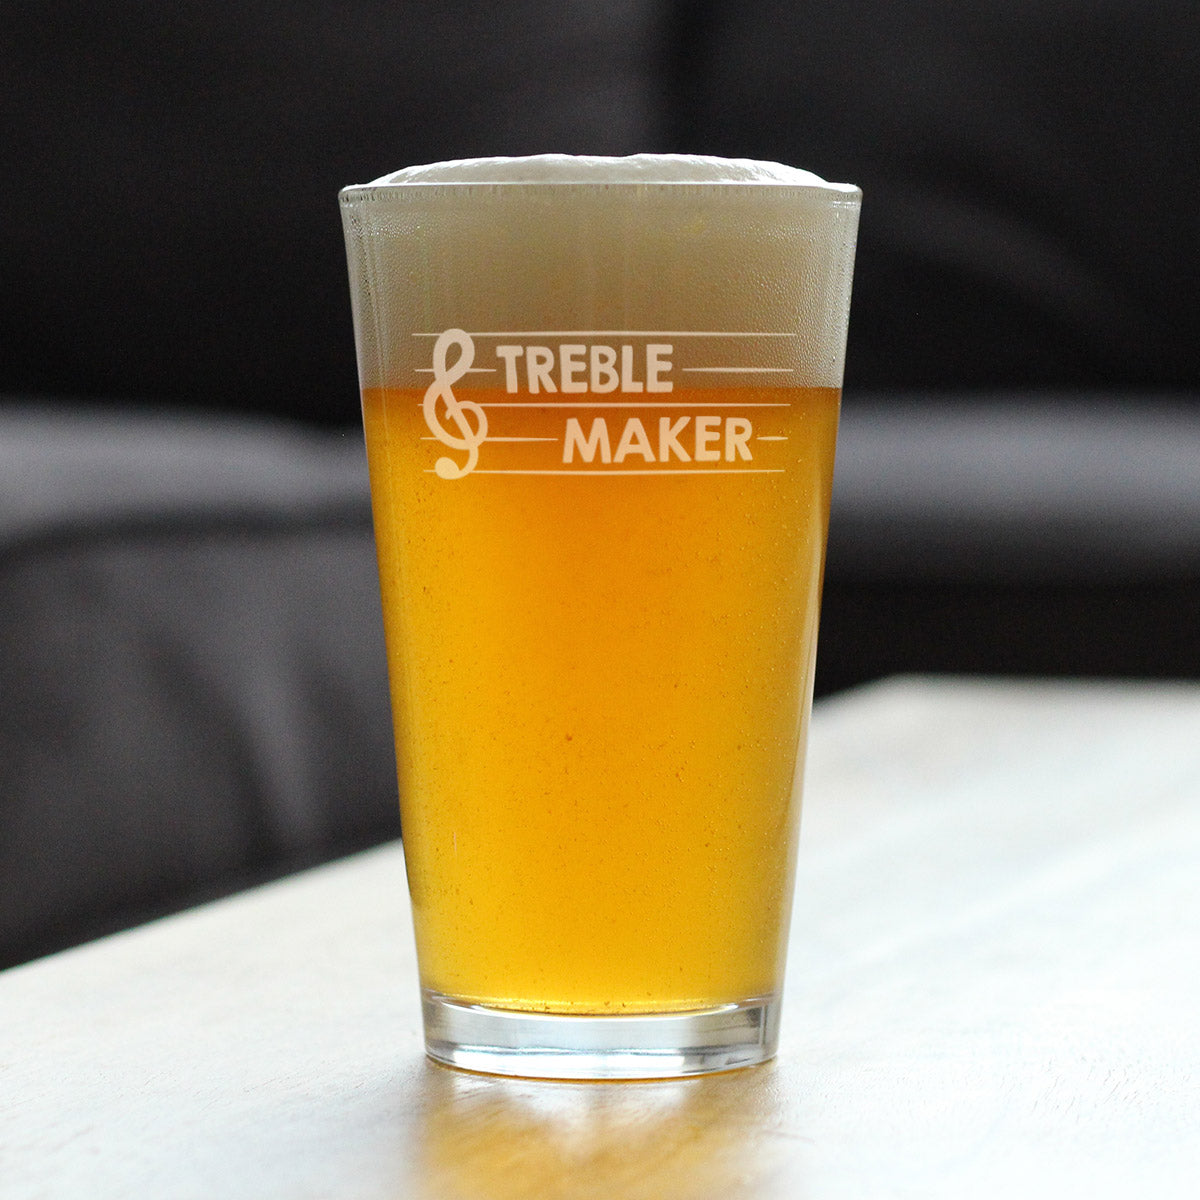 Treble Maker - 16 Ounce Pint Glass